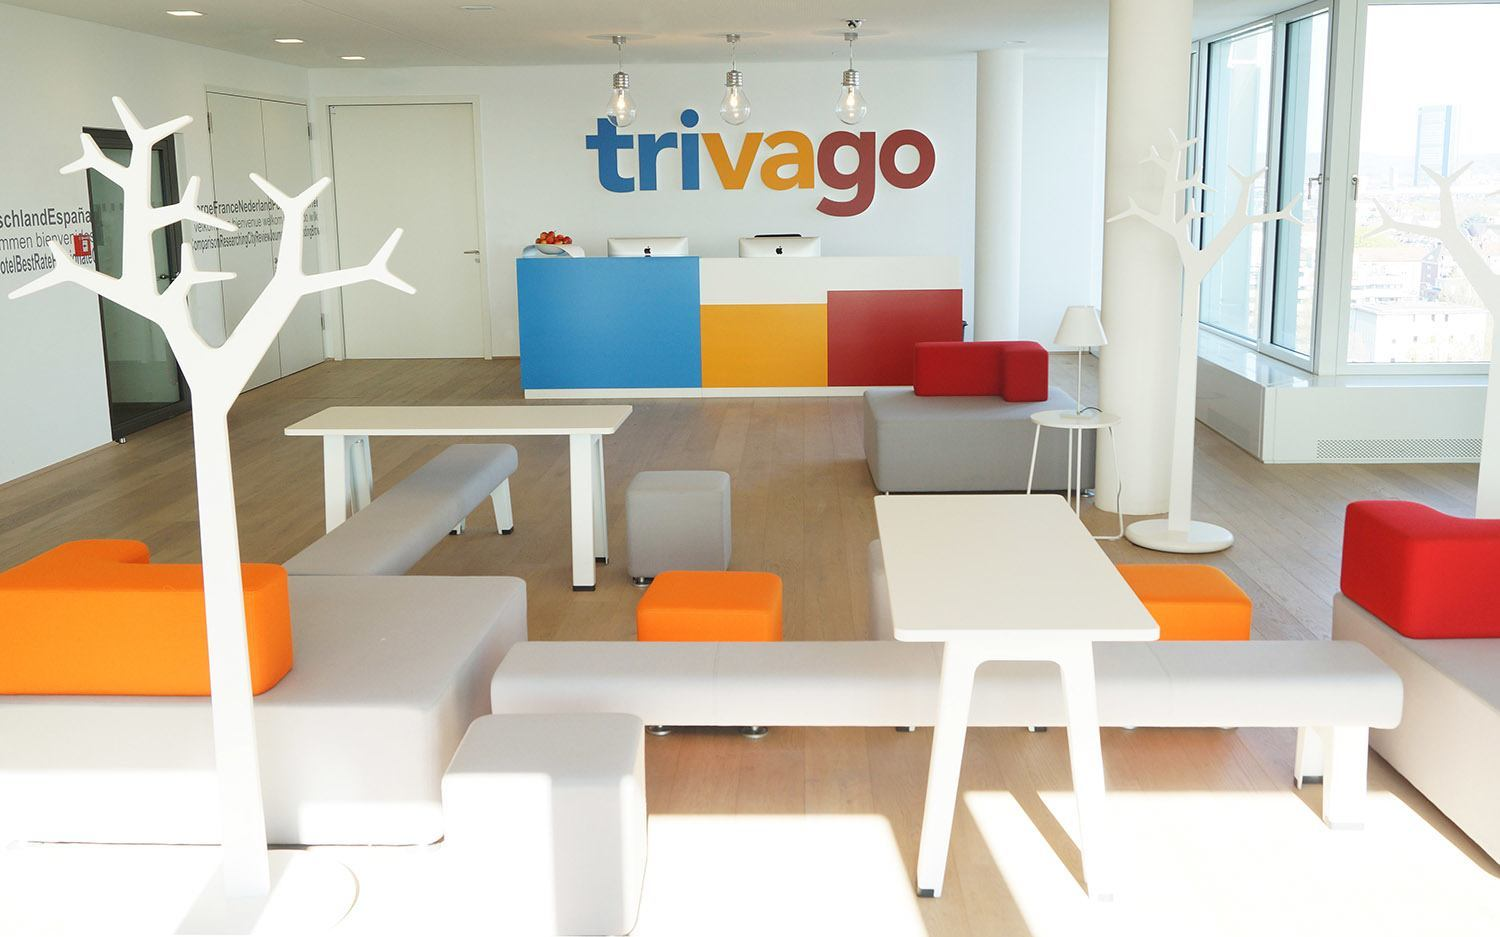 Trivago Italy Hotels